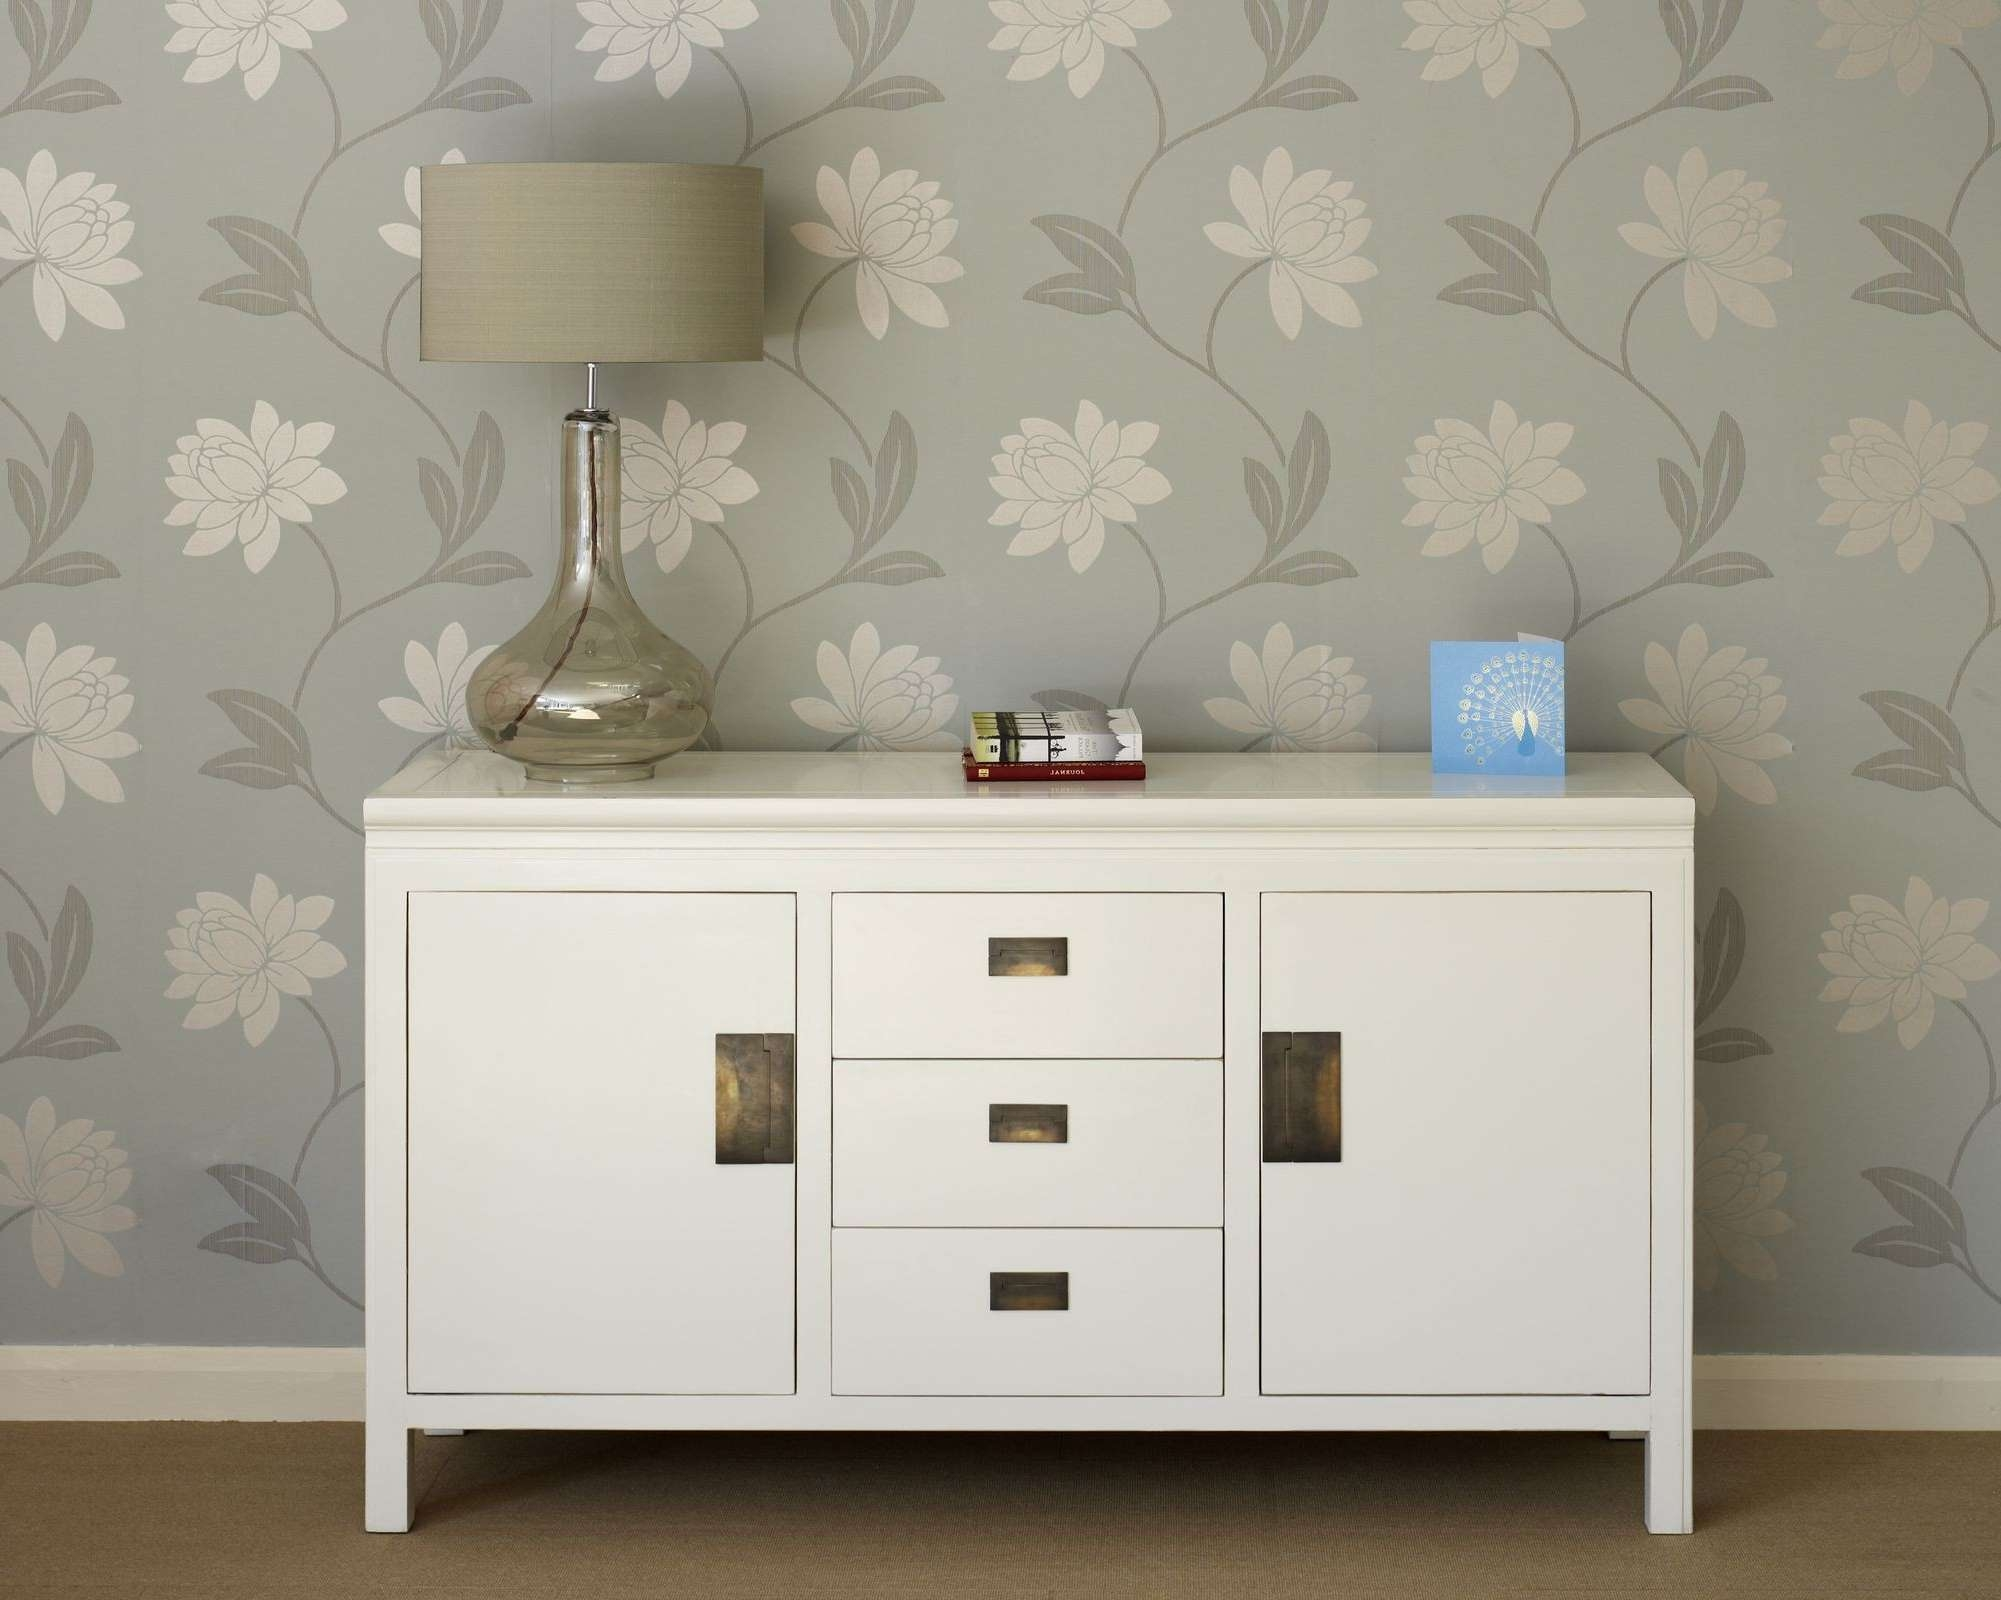 Oriental White Lacquer Sideboards – Shanxi With Regard To Large White Sideboards (View 2 of 20)